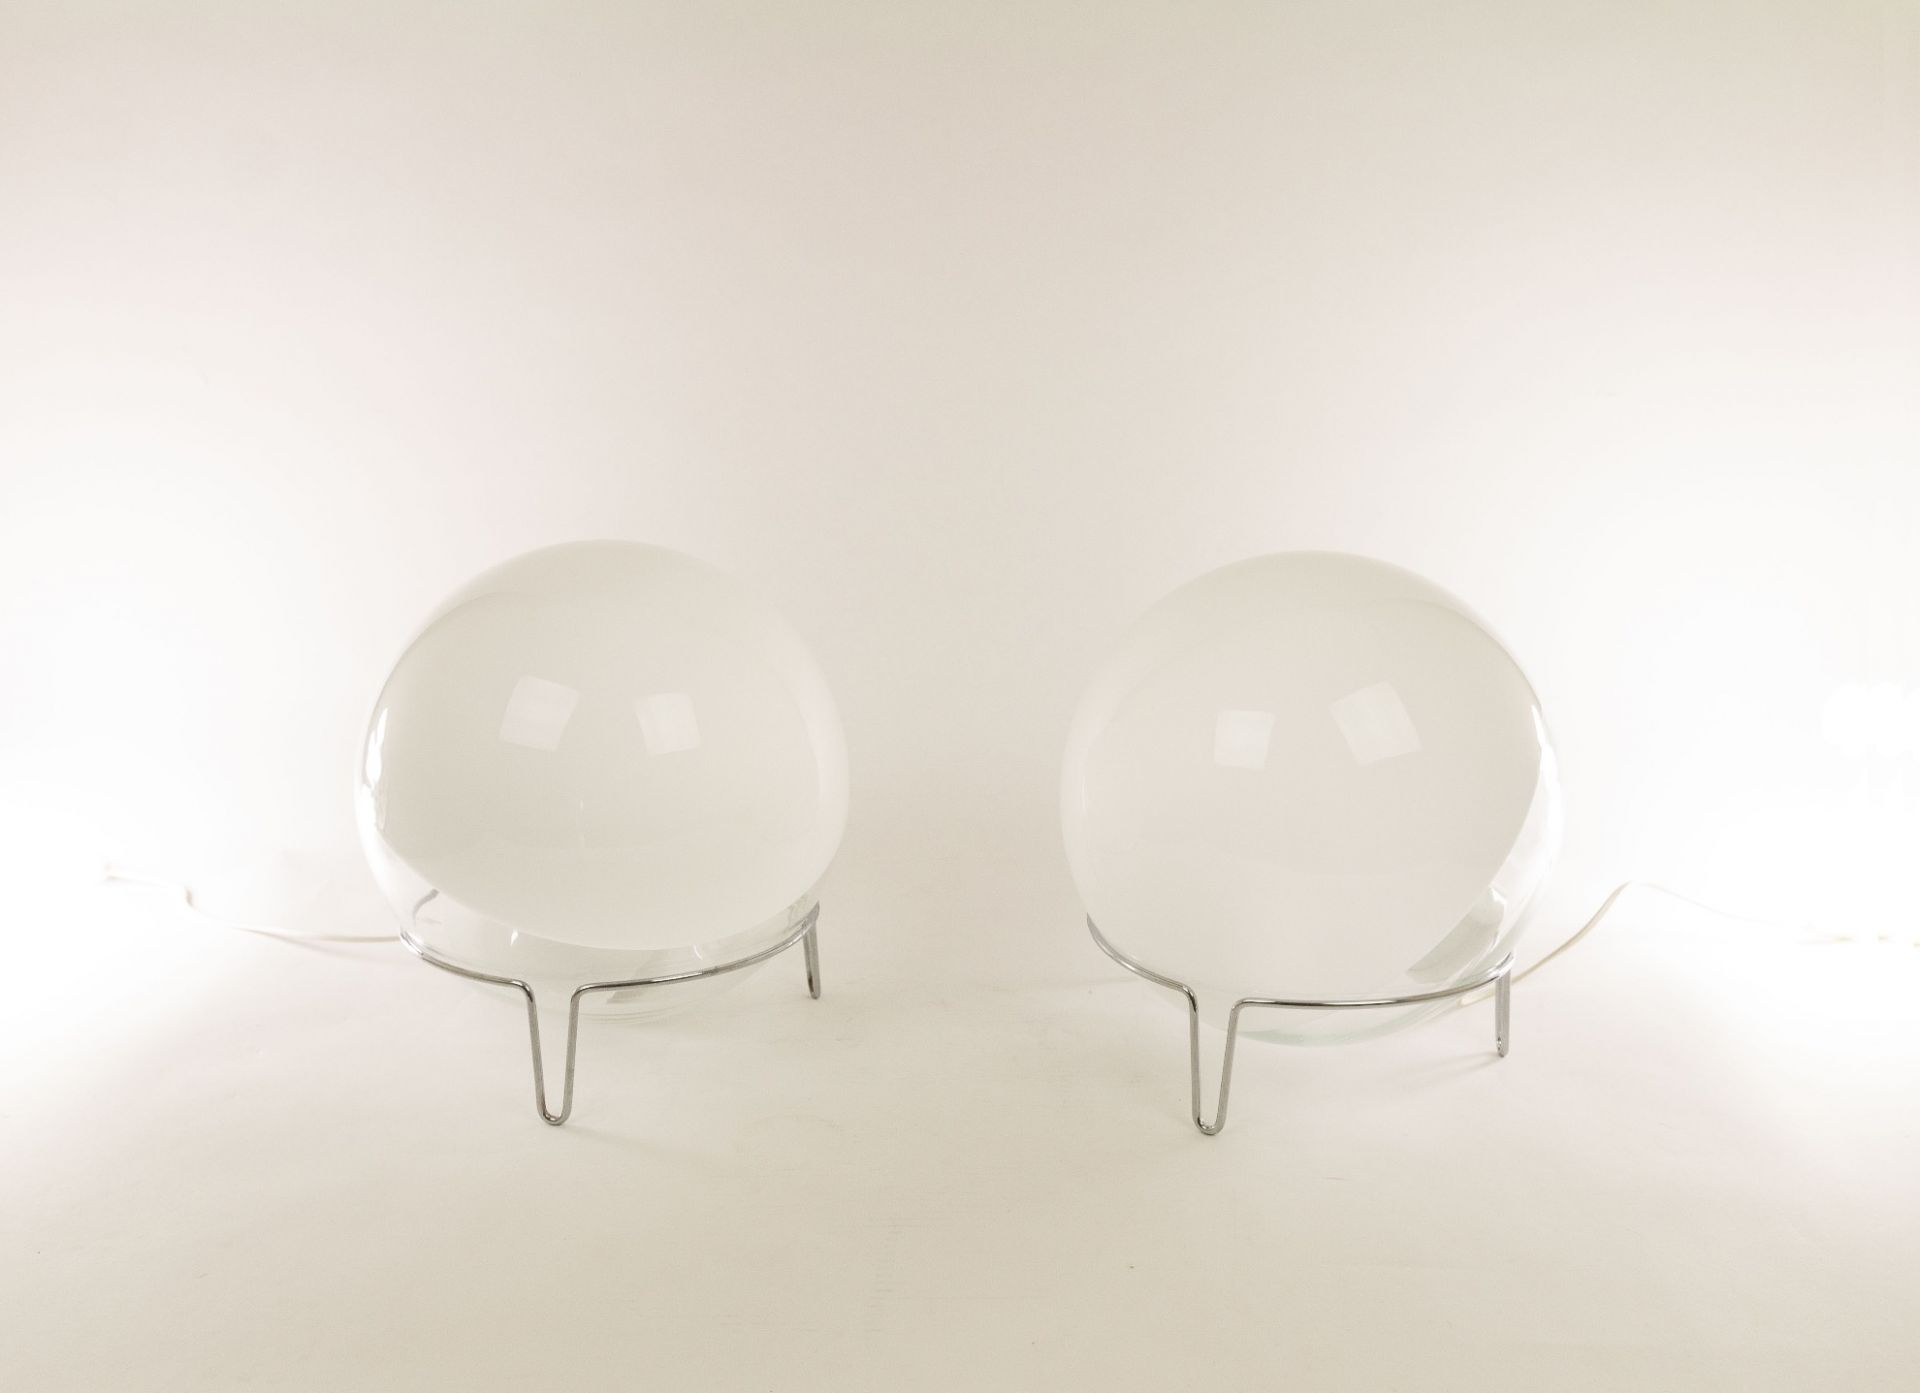 Pair of medium sized Murano glass table lamps by Angelo Mangiarotti for Skipper